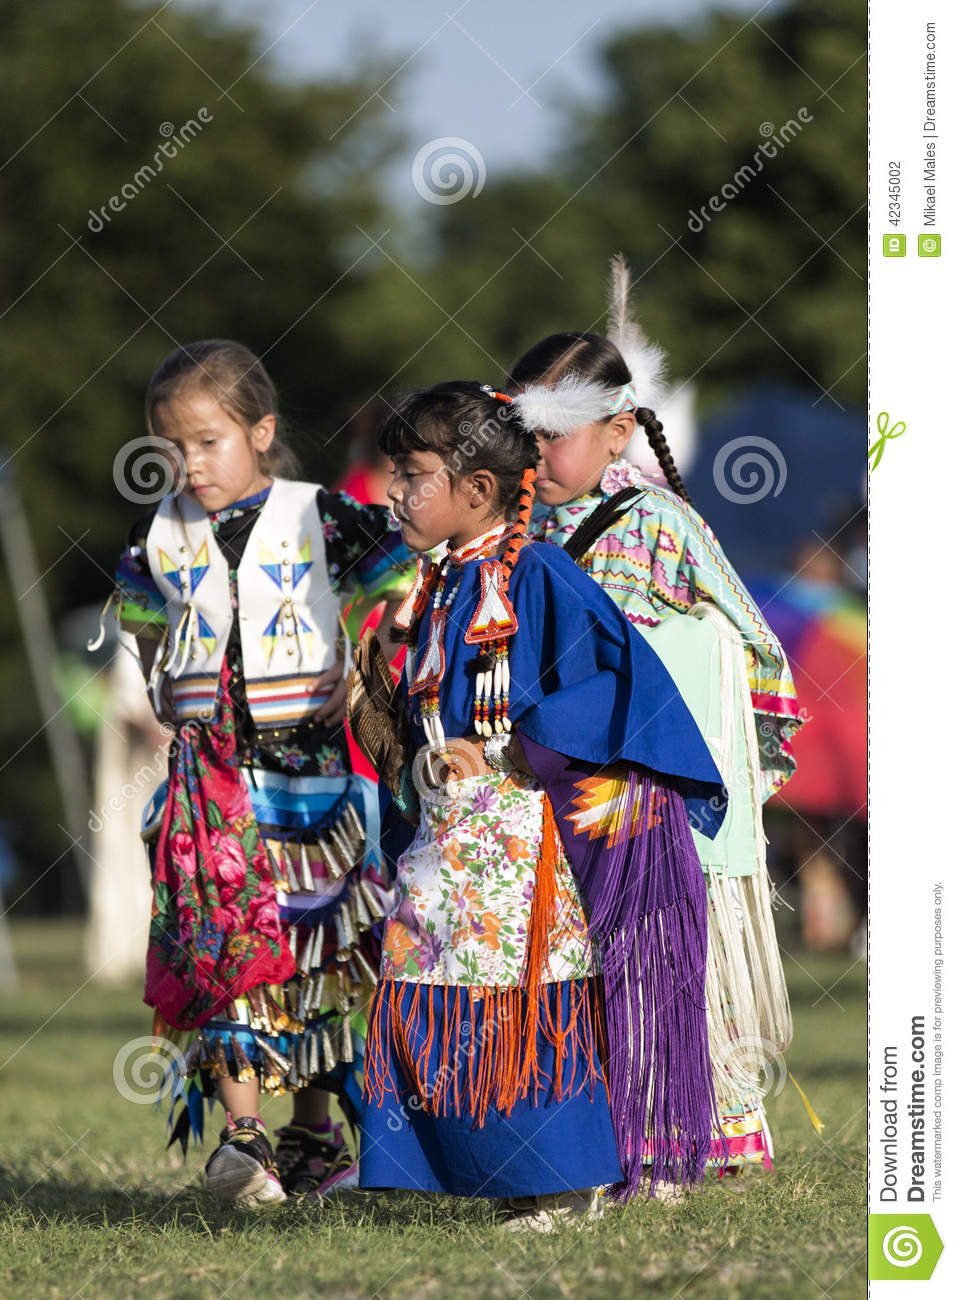 traditions of shawnee indians General overview: the shawnee indians lived in southern ohio, west virginia, and western pennsylvania they were driven from this area by the iroquois around the 1660's.